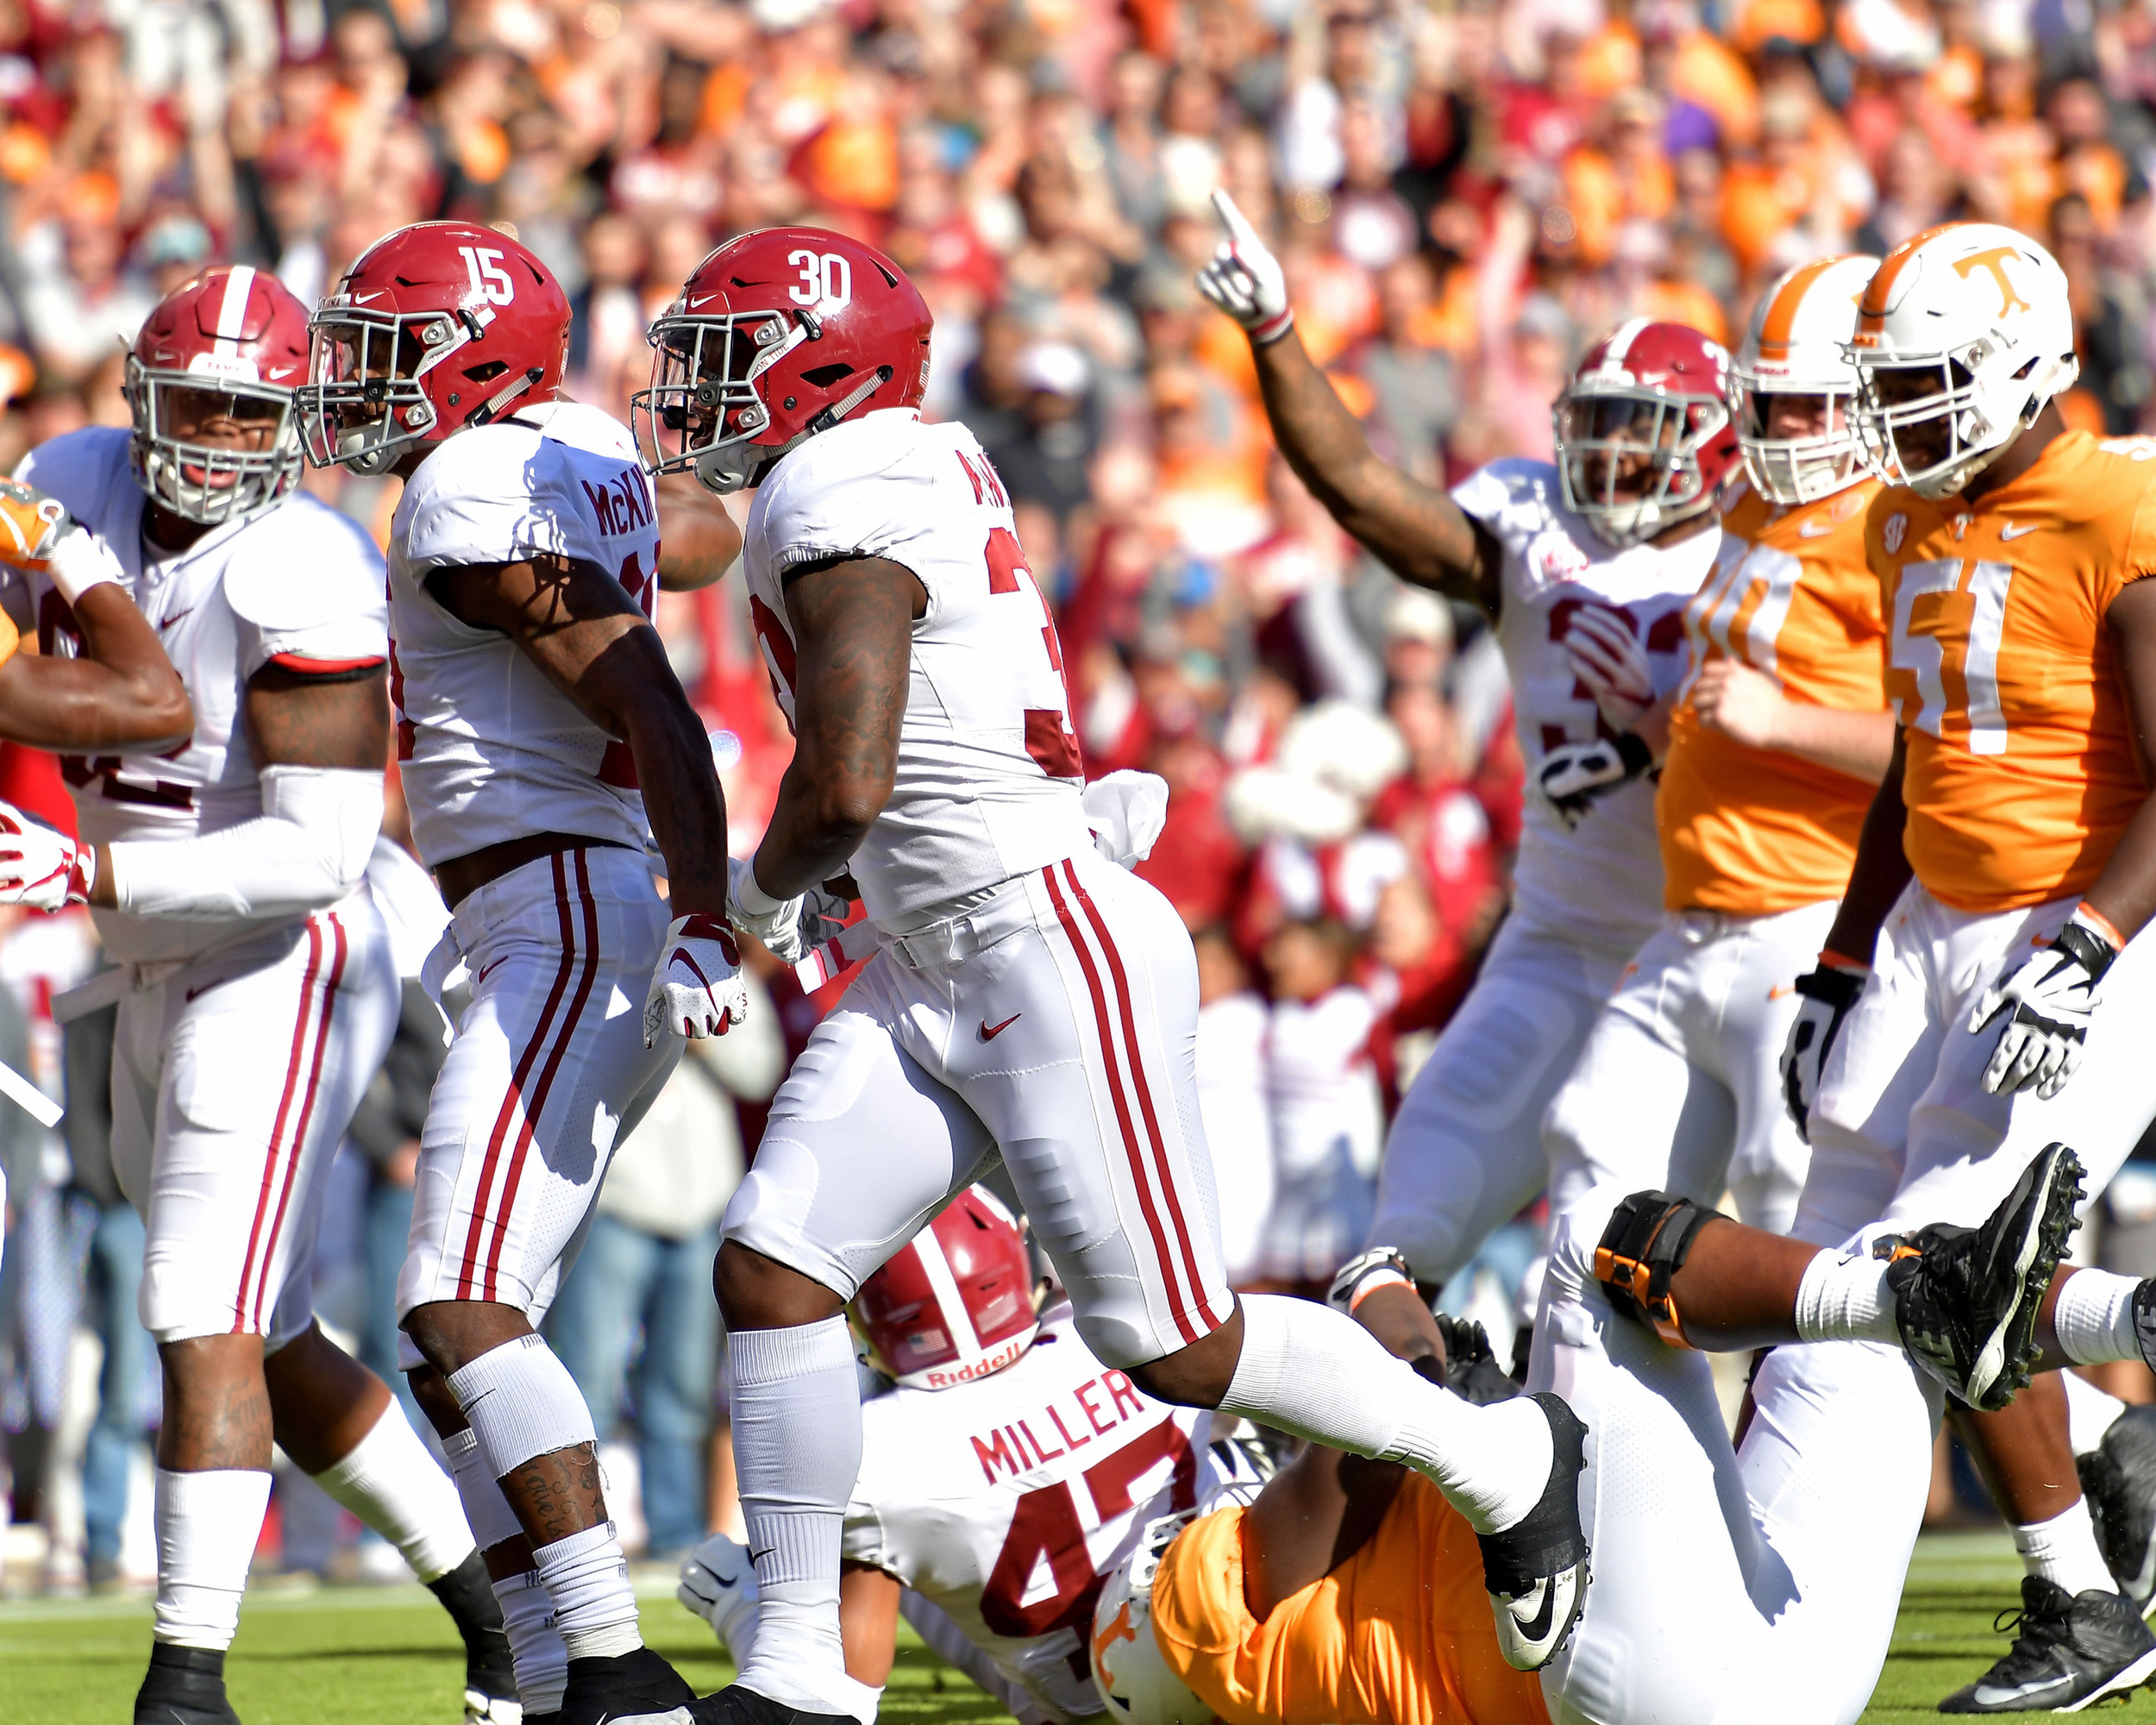 Alabama Crimson Tide linebacker Mack Wilson (30) and defensive back Xavier McKinney (15) celebrate a sack of Tennessee Volunteers quarterback Jarrett Guarantano (2) in the first quarter of the NCAA football game on Saturday, Oct. 20, 2018, at Neyland Stadium in Knoxville. Tenn. Alabama wins 58-21. (Photo by Lee Walls)